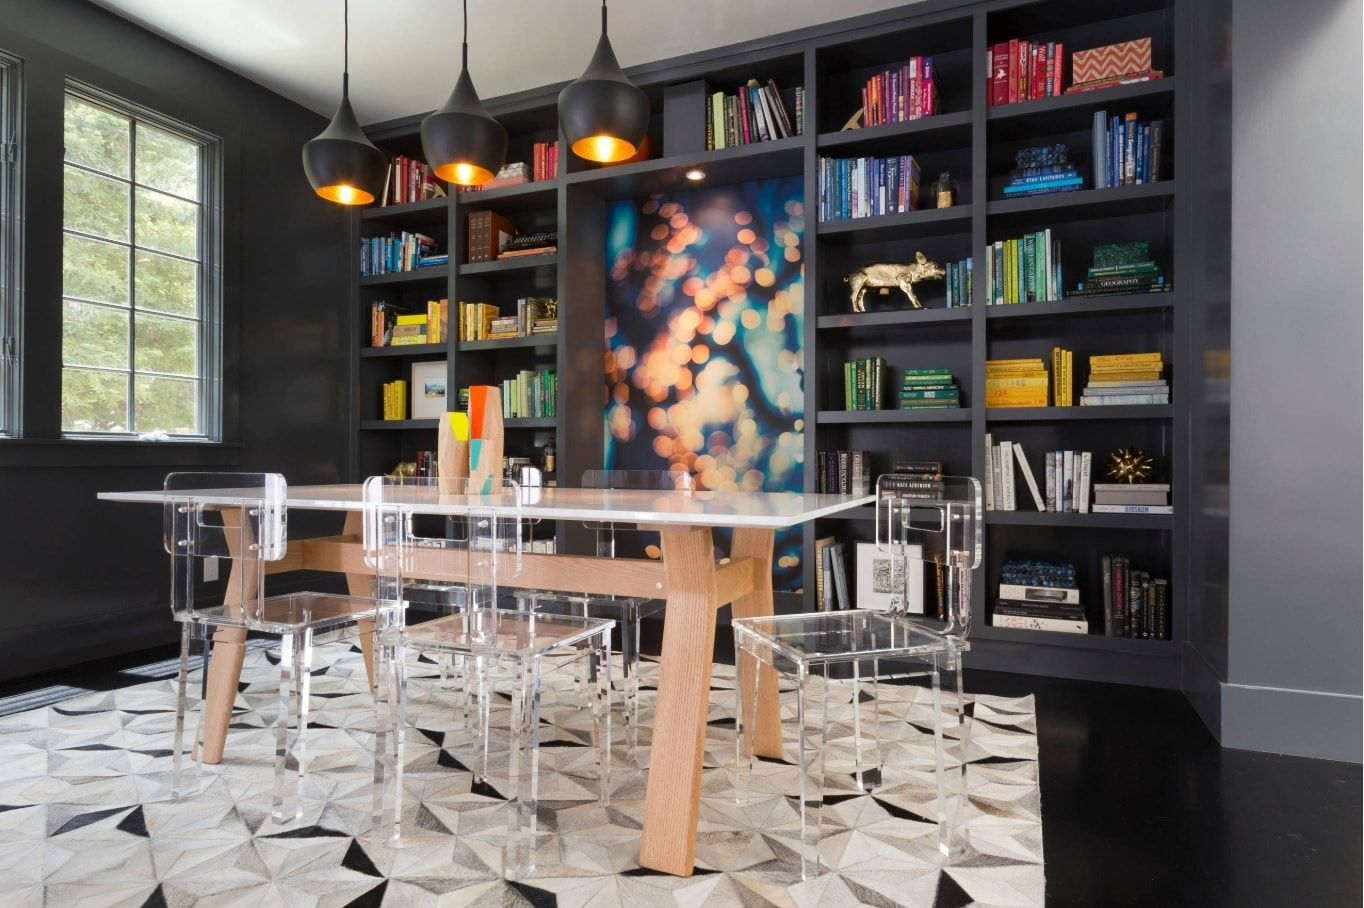 Black Dining Room Walls Effective Ideas for Authentic Interior. Library with open shelves and white floor, plexiglass chairs and large plastic coated table